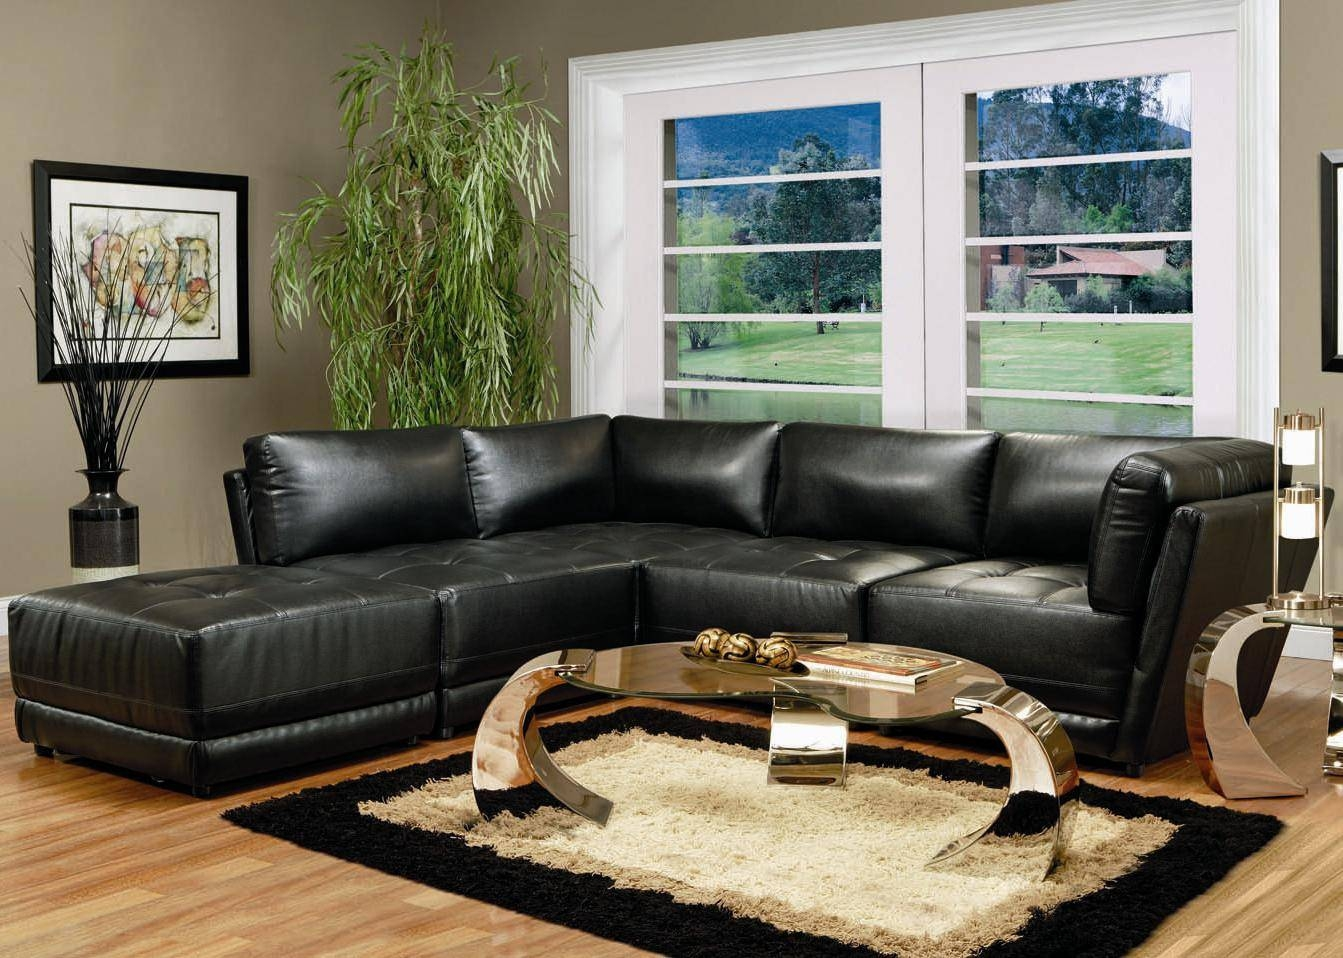 Coaster - Find A Local Furniture Store With Coaster Fine Furniture intended for Coaster Sectional Sofas (Image 2 of 15)